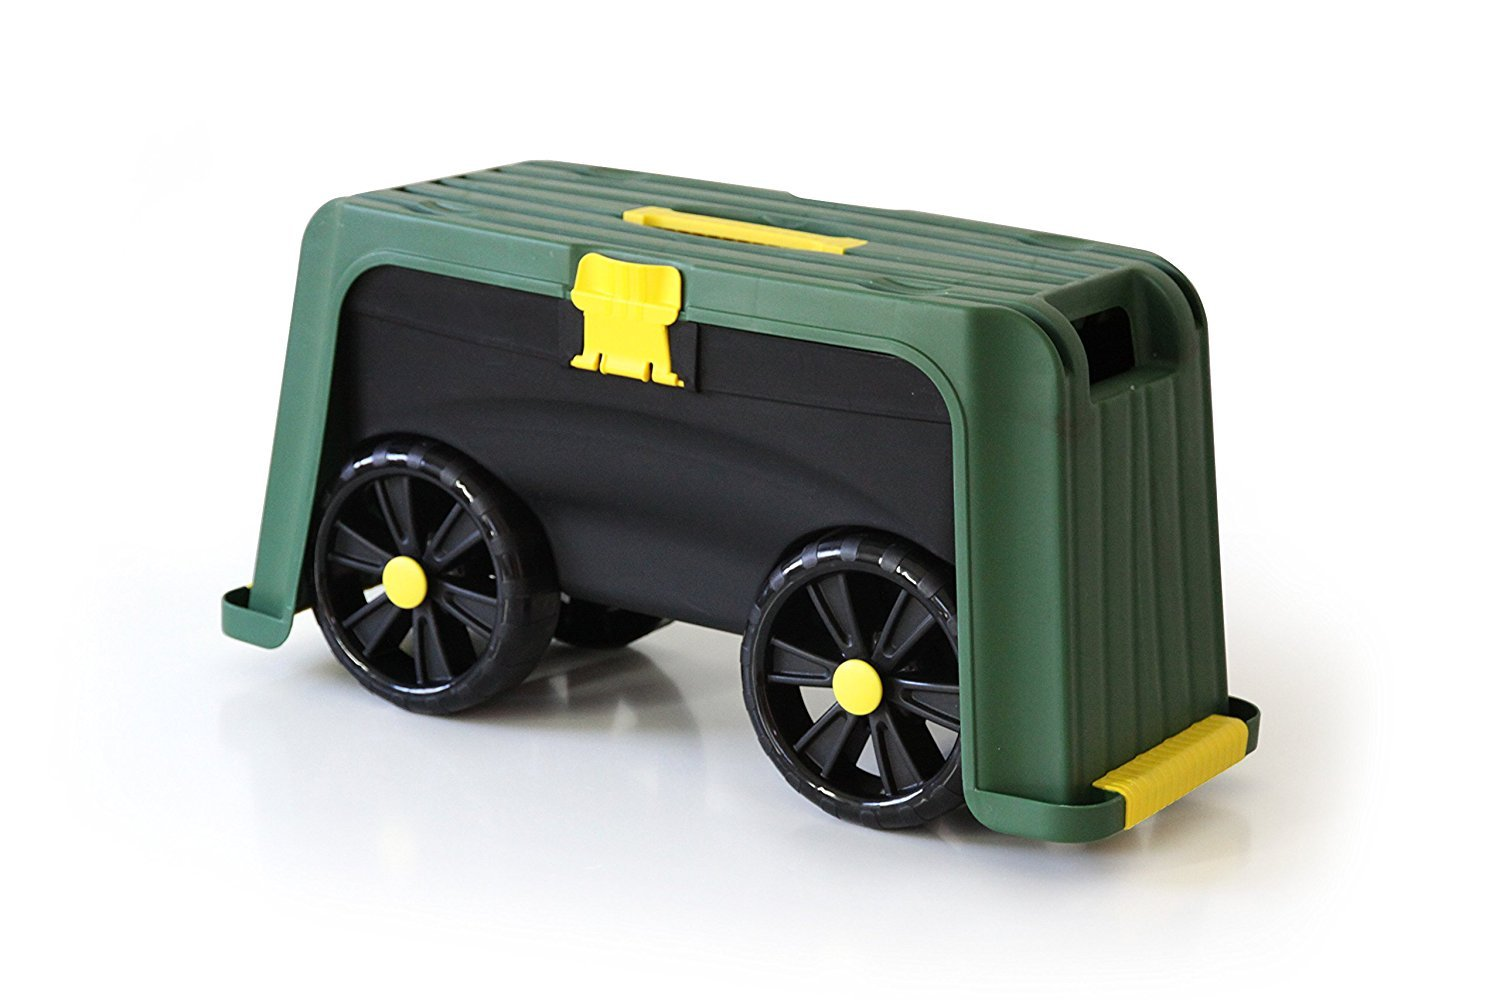 garden scooter seat. Miracle-Gro 4-in-1 Garden Stool - Multi-Use Scooter Seat